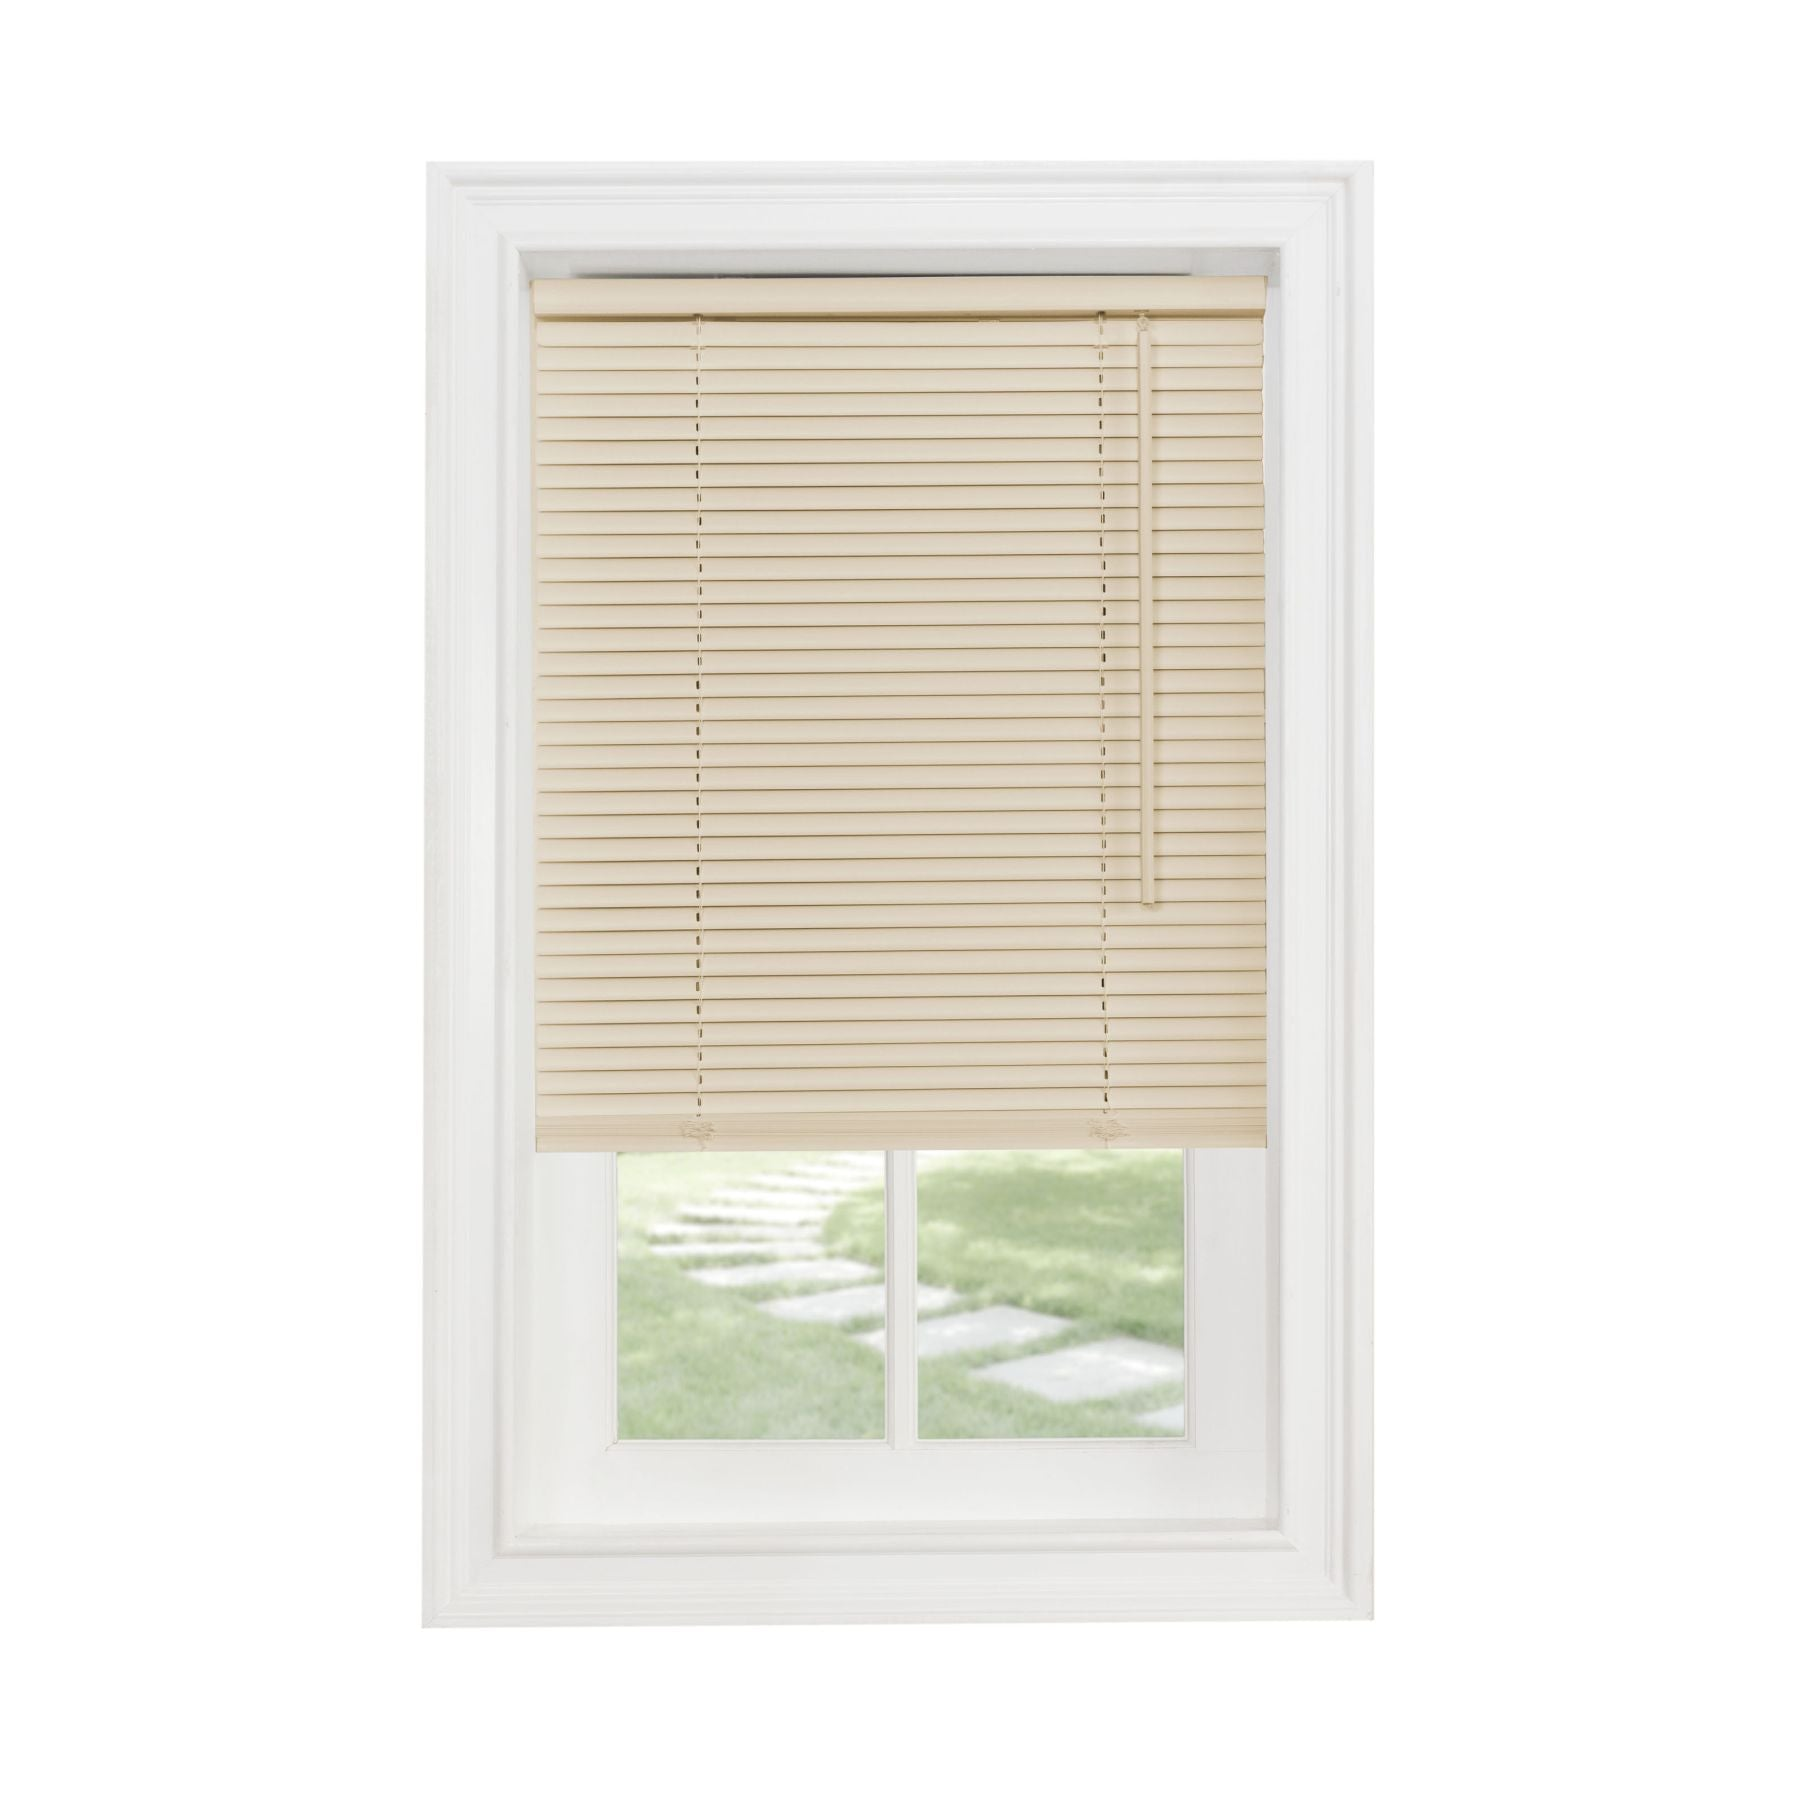 "Traditional Elegance Cordless Sunrise 1"" Light Filtering Mini Blind 27x64 - Alabaster"